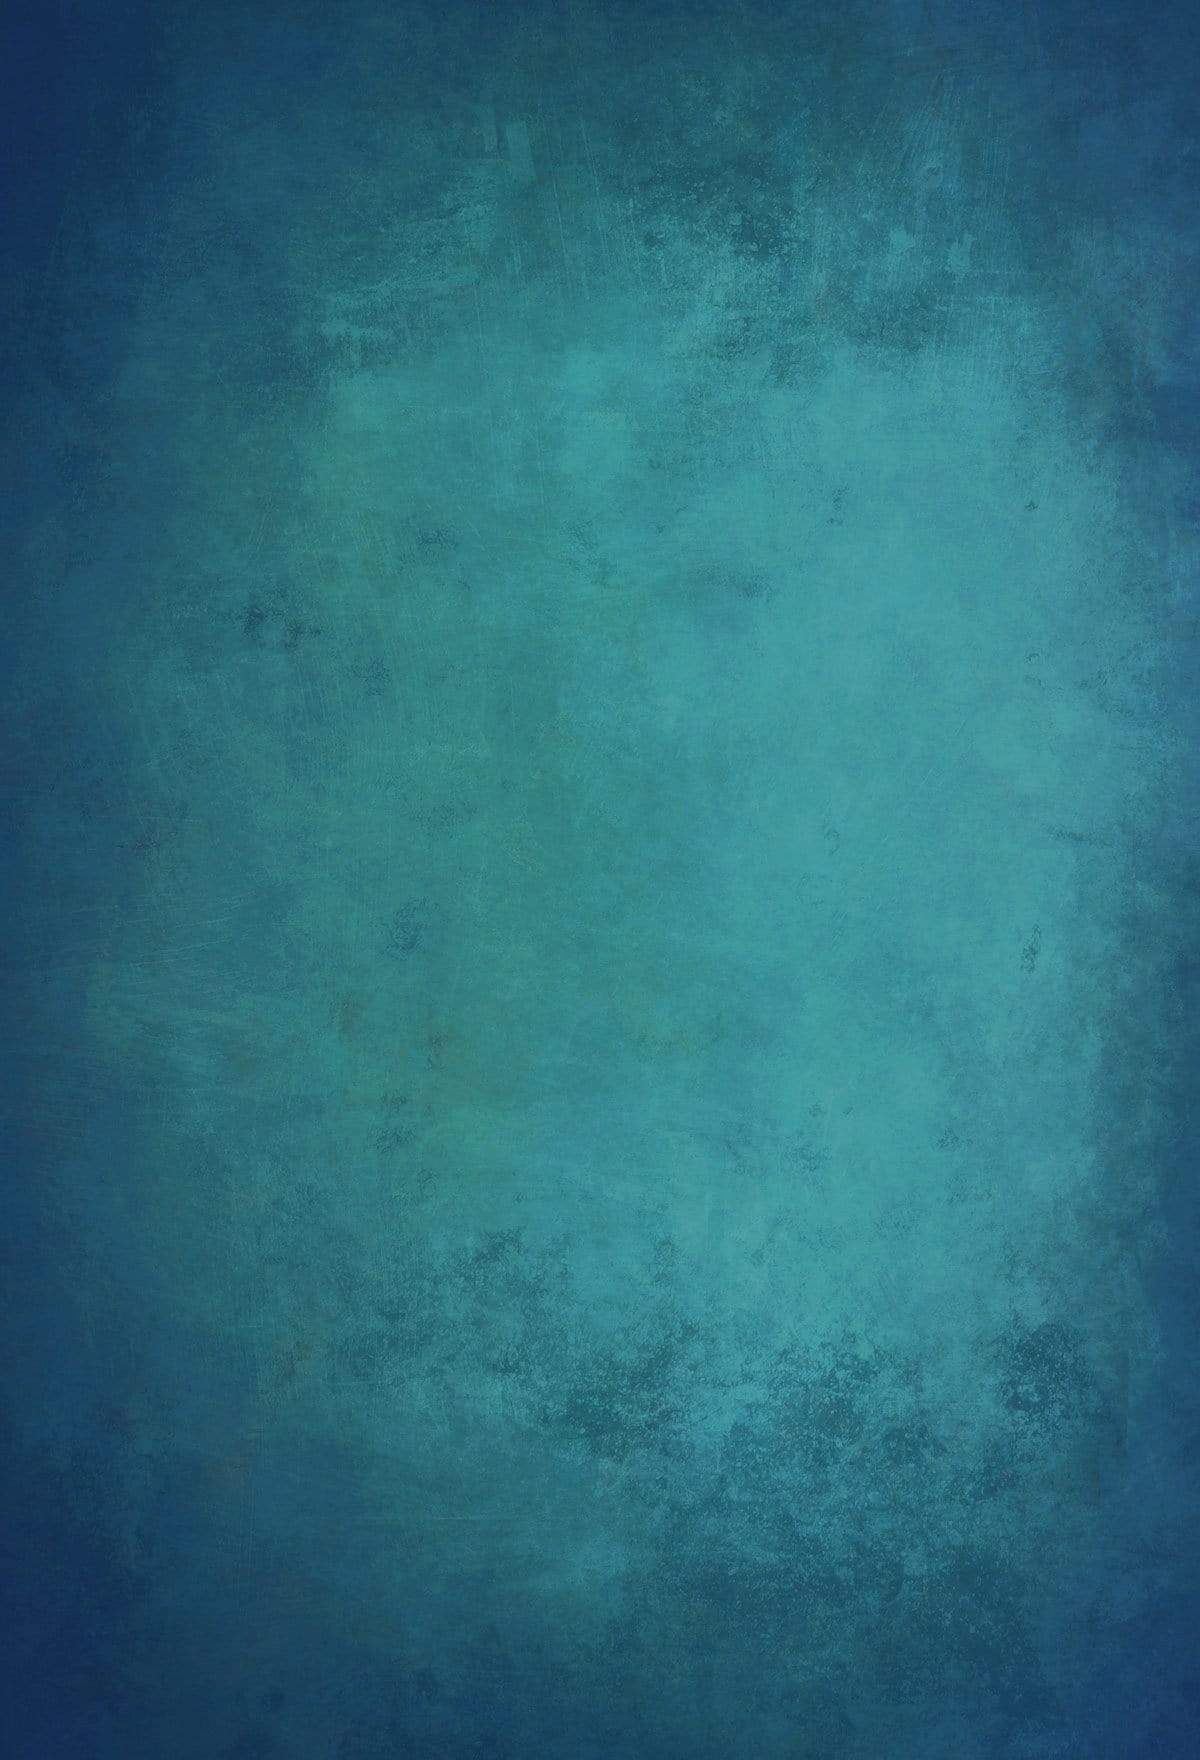 Load image into Gallery viewer, Katebackdrop£ºKate Deep Cold Blue Green Backdrop texture abstract